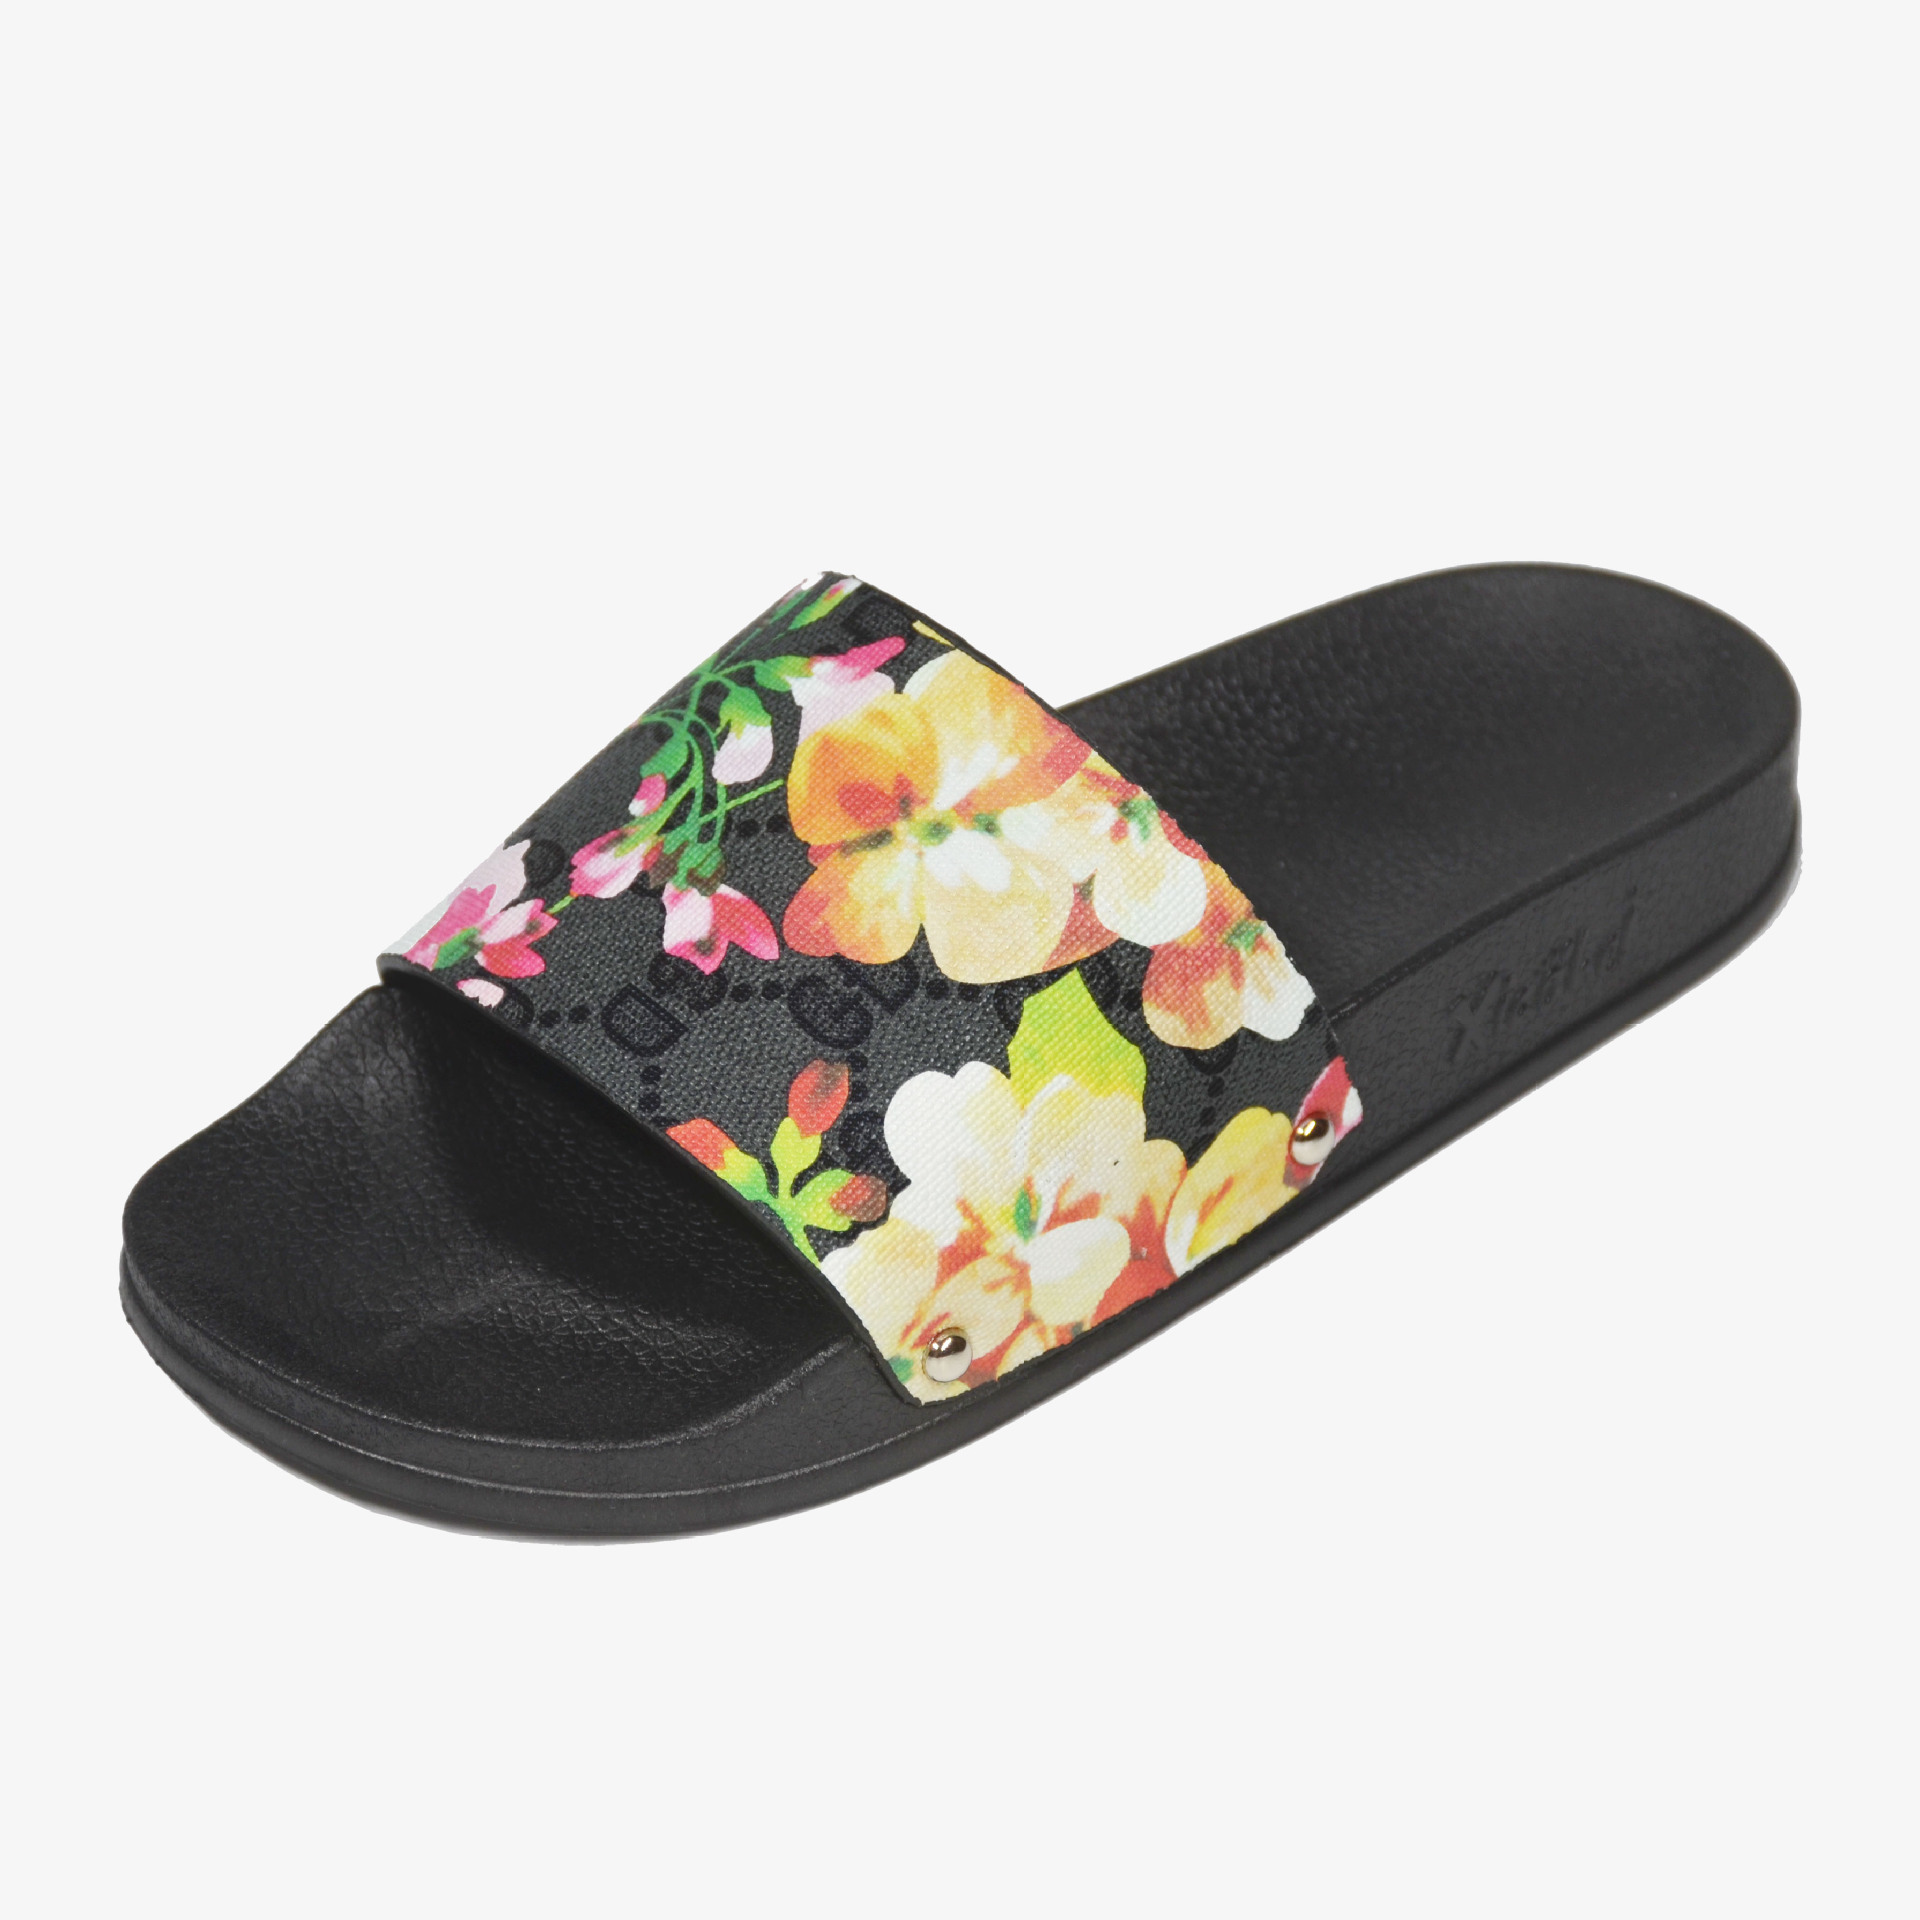 Women Summer Slippers Flat Shoes PU Soft Bottom Platform Slippers Woman Beach Slippers Lady Flip Flops Sandals Plus Size fashion summer flat slippers female soft indoor slip resistant outsole flip sandals plus size beach shoes